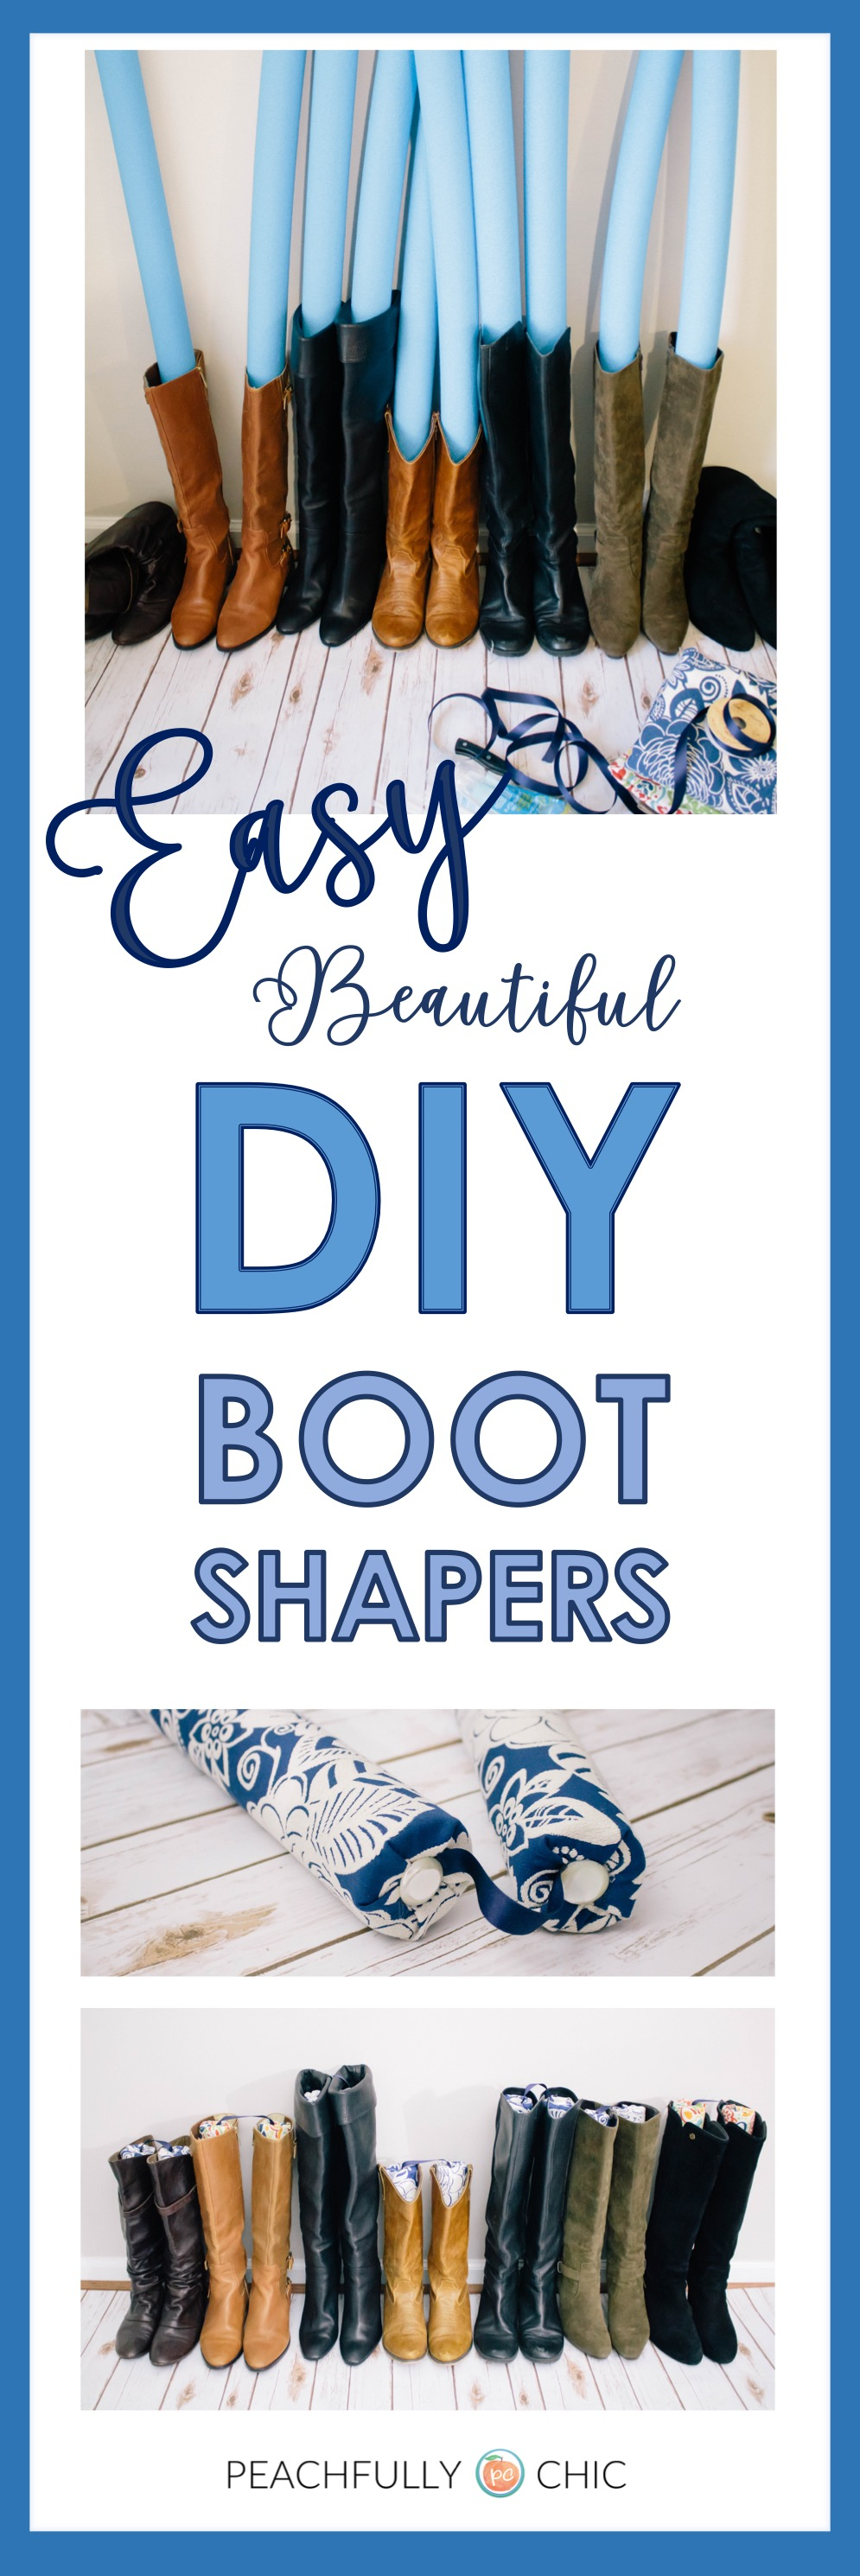 how-to-make-DIY-boot-shapers